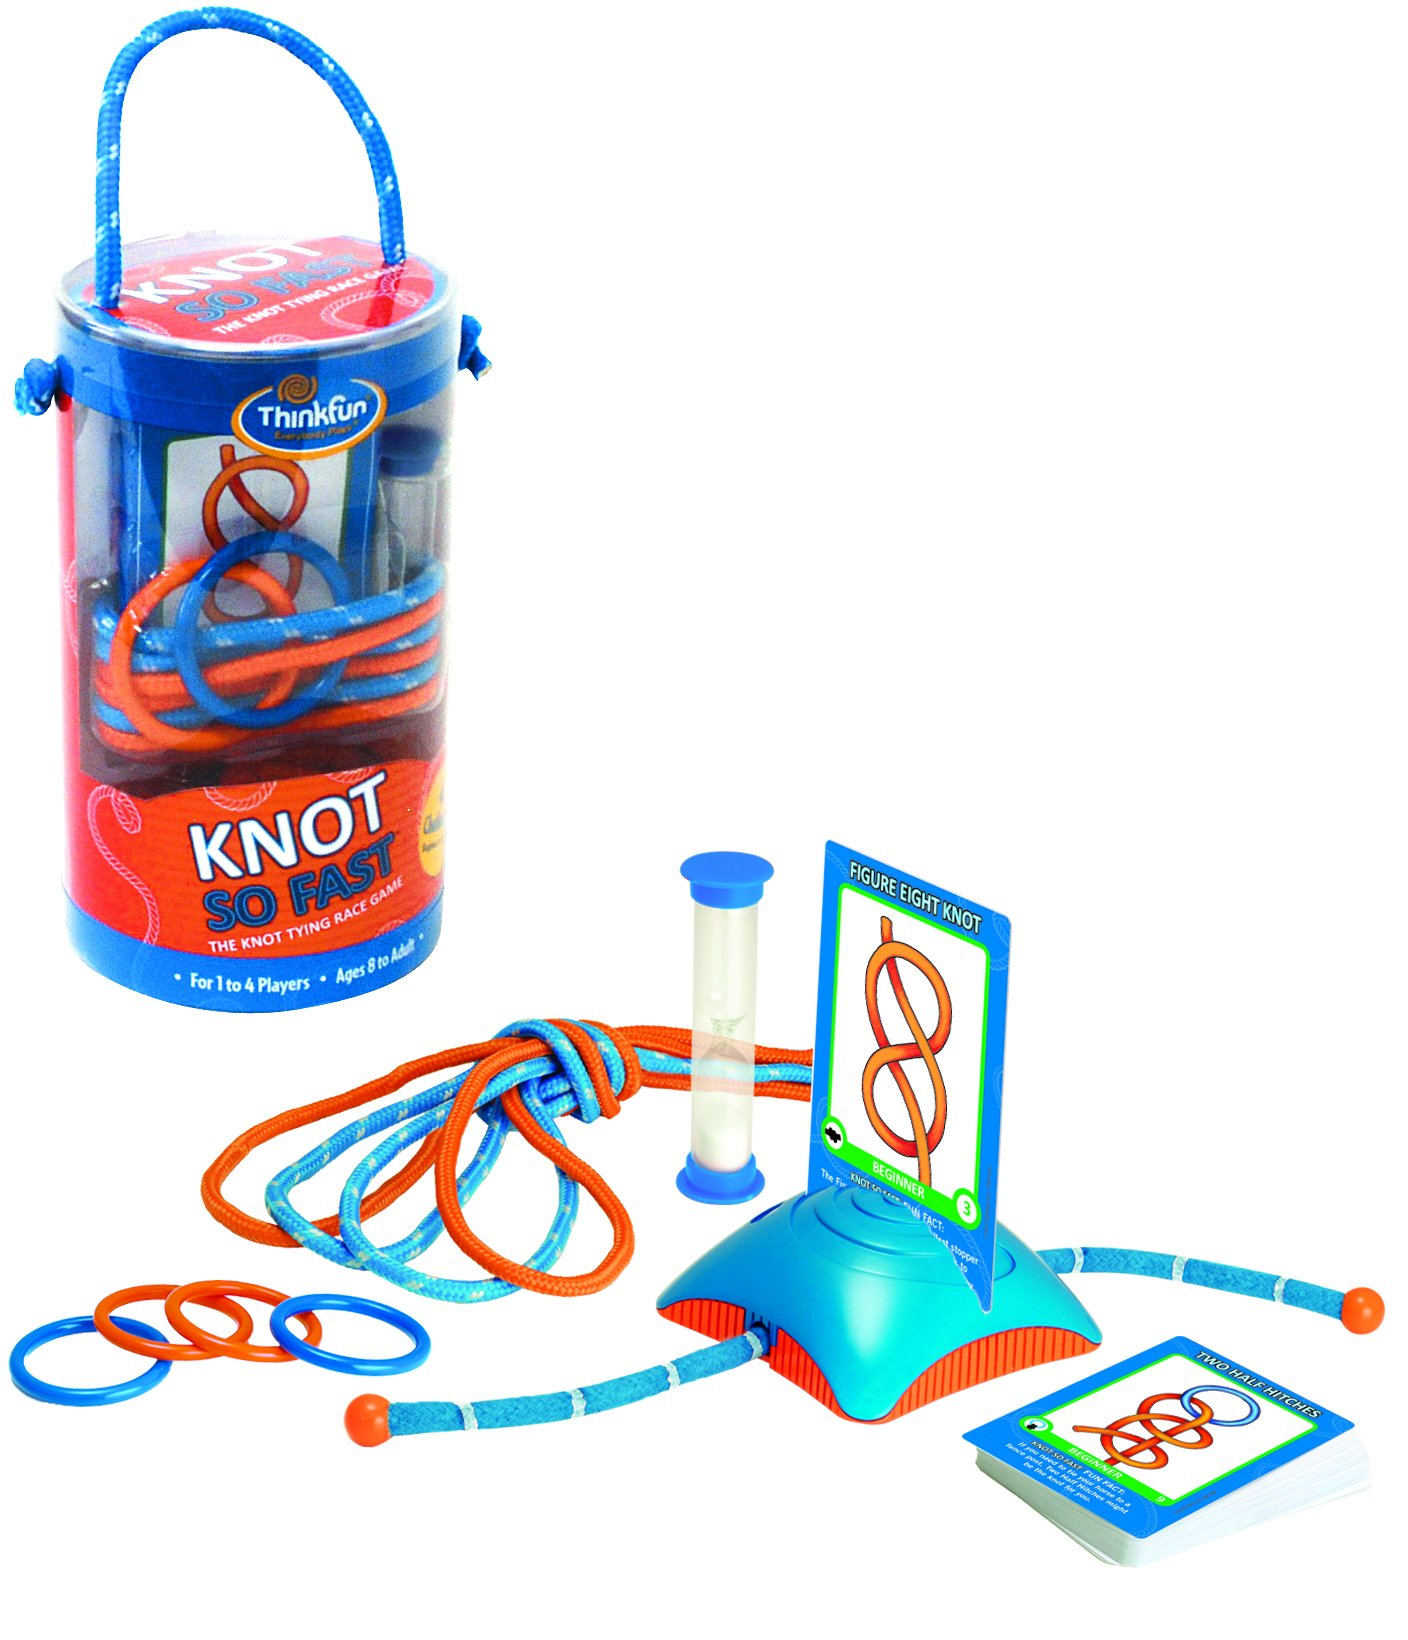 Think Fun Knot So Fast Innovative Knot Tying Game with 40 Challenges by Think Fun